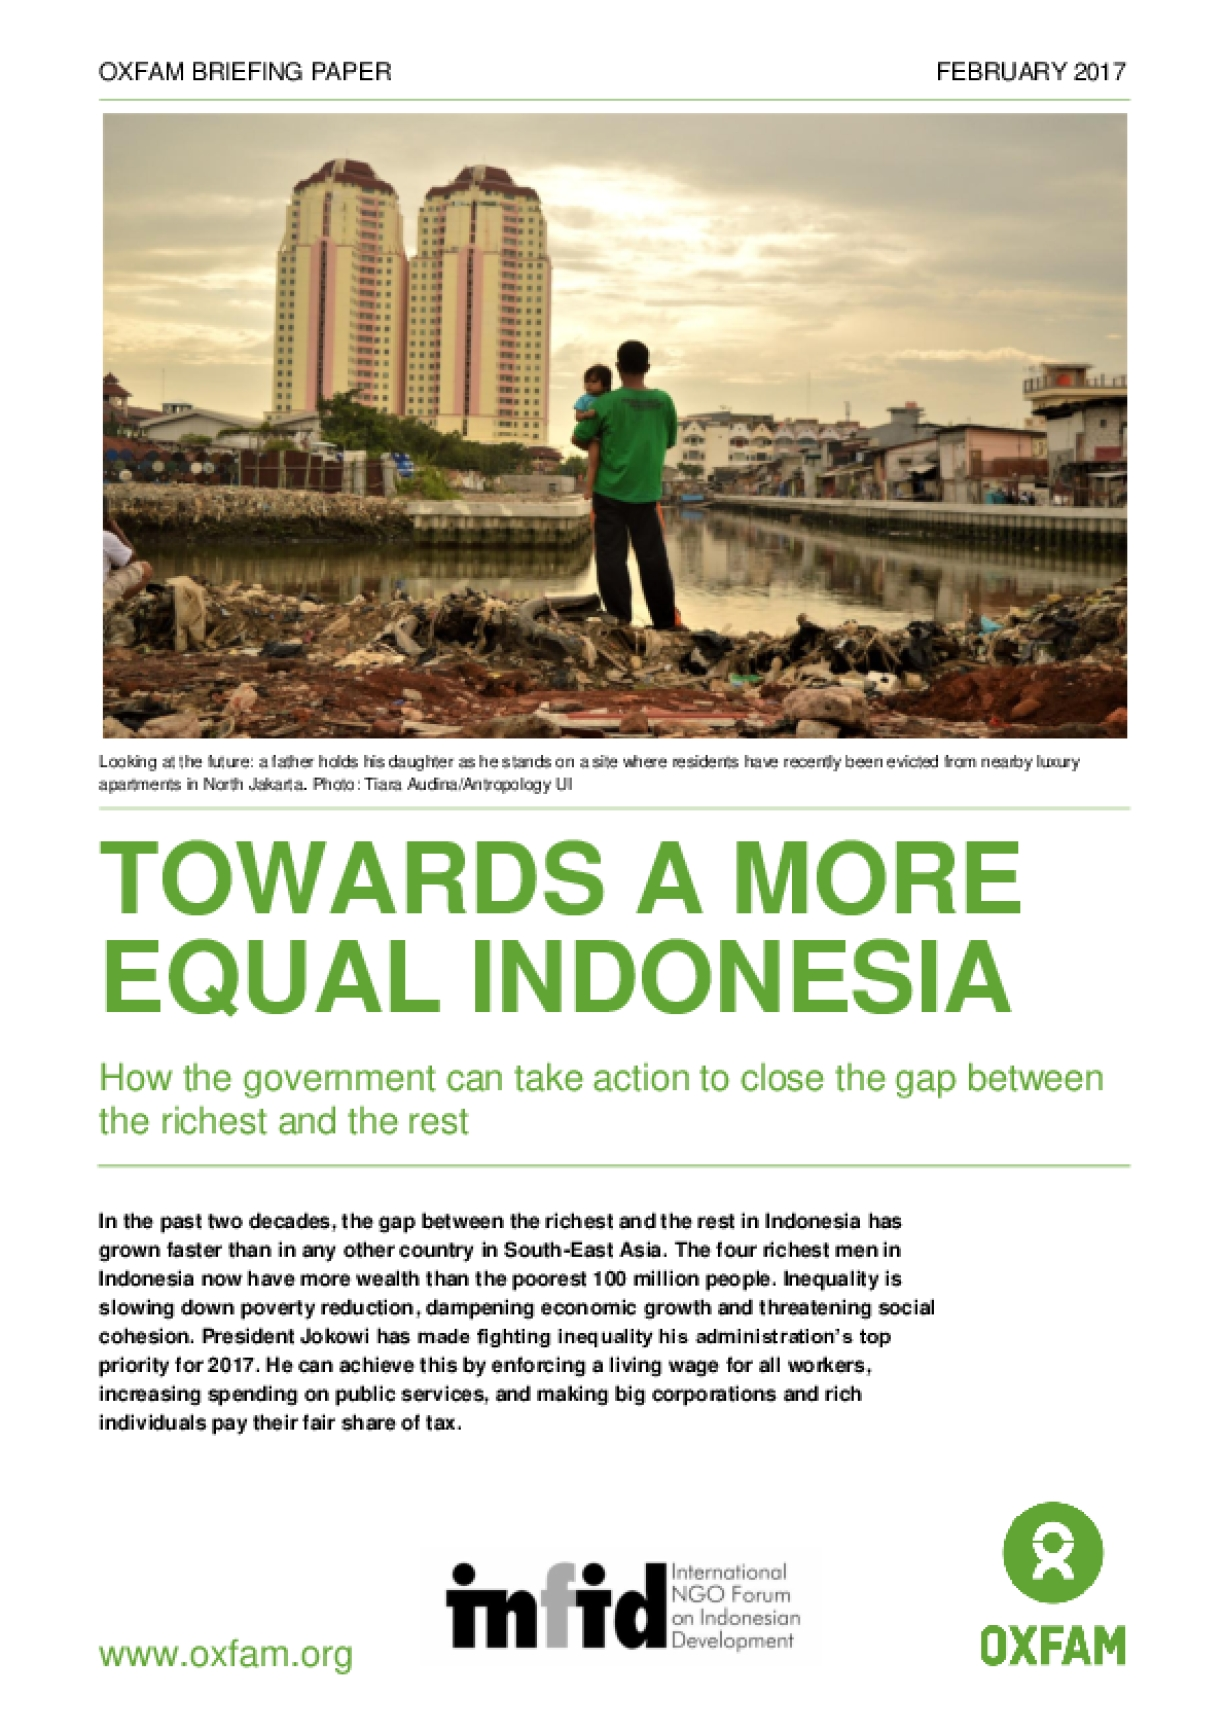 Towards a More Equal Indonesia: How the Government Can Take Action to Close the Gap Between the Richest and the Rest